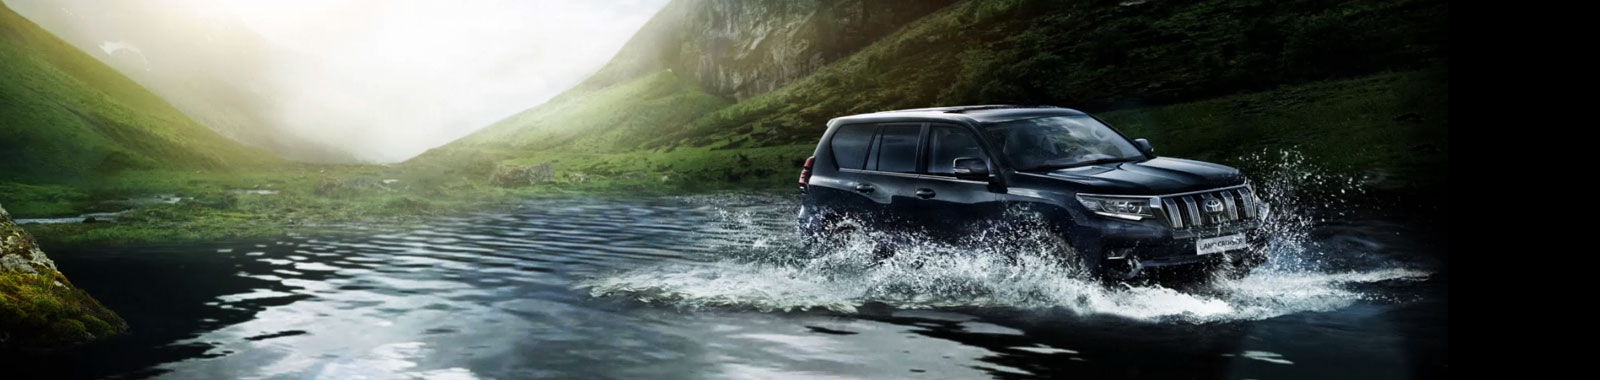 toyota-land-cruiser-2018-header-animated-poster-v2_tcm-22-1133381.jpg